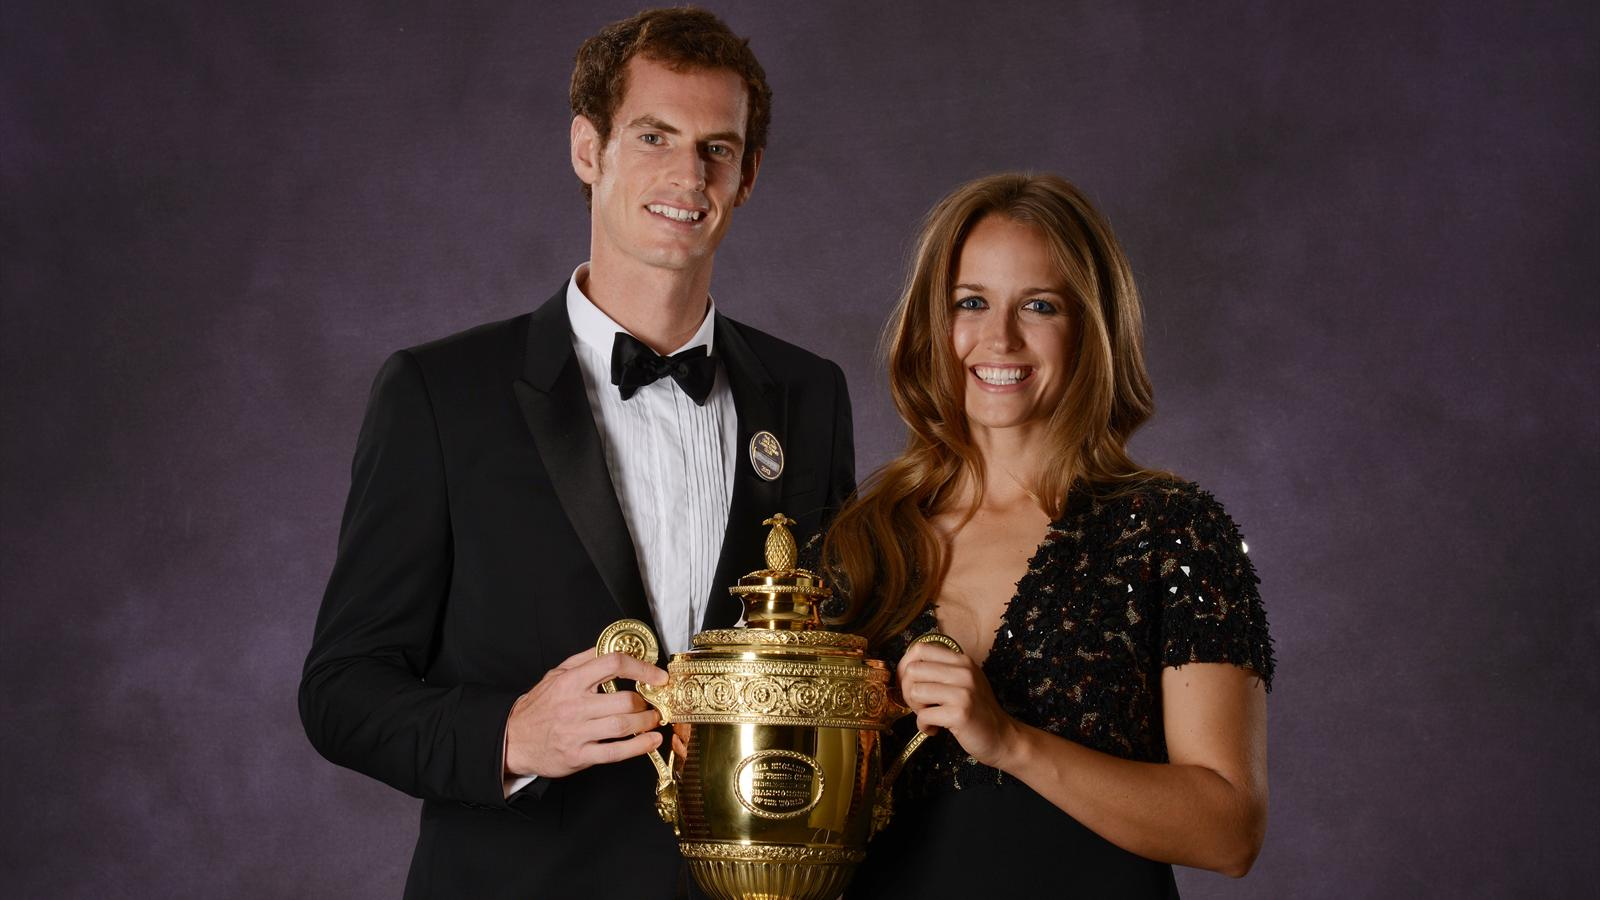 Andy Murray and Kim Sears posing with the Wimbledon trophy